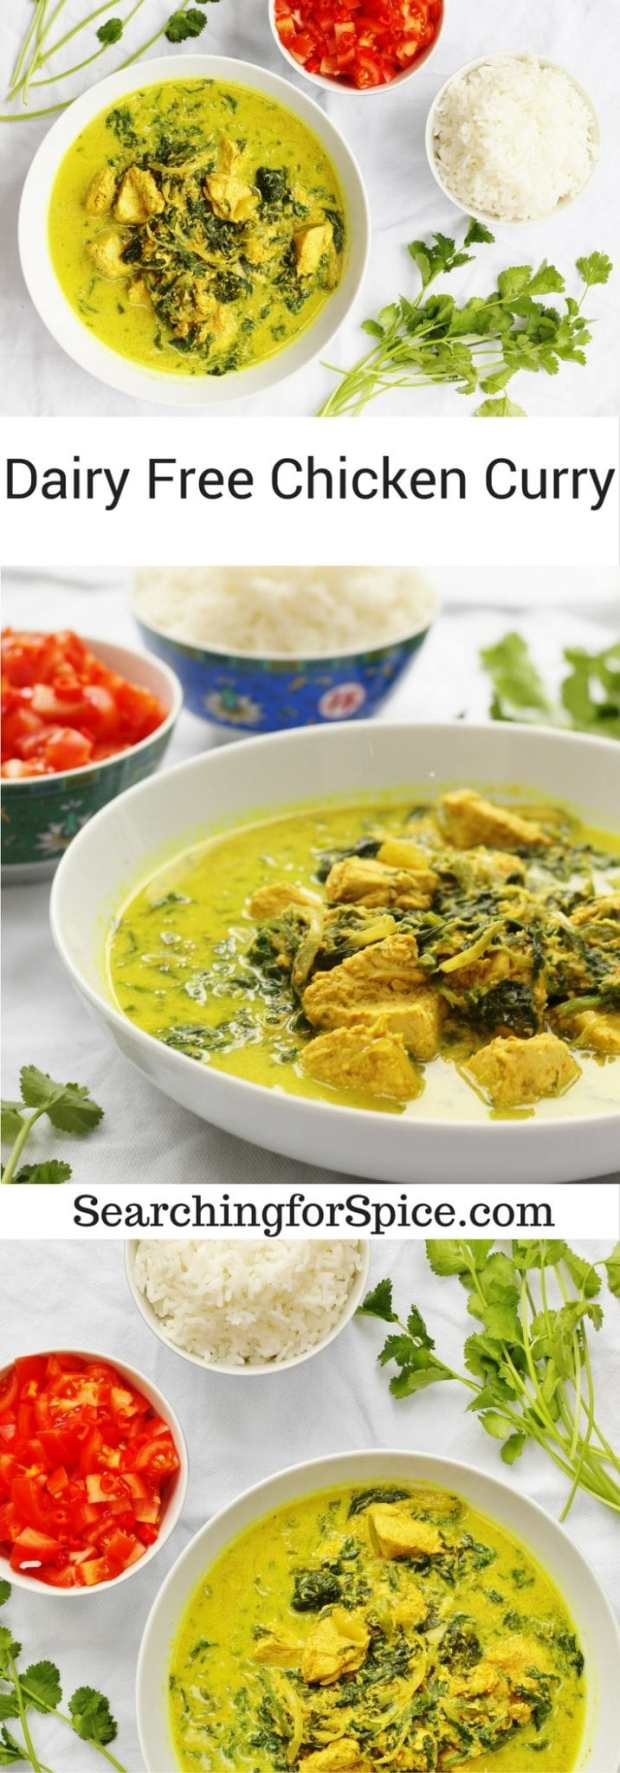 Dairy Free Chicken Curry from Simply Dairy Free book review